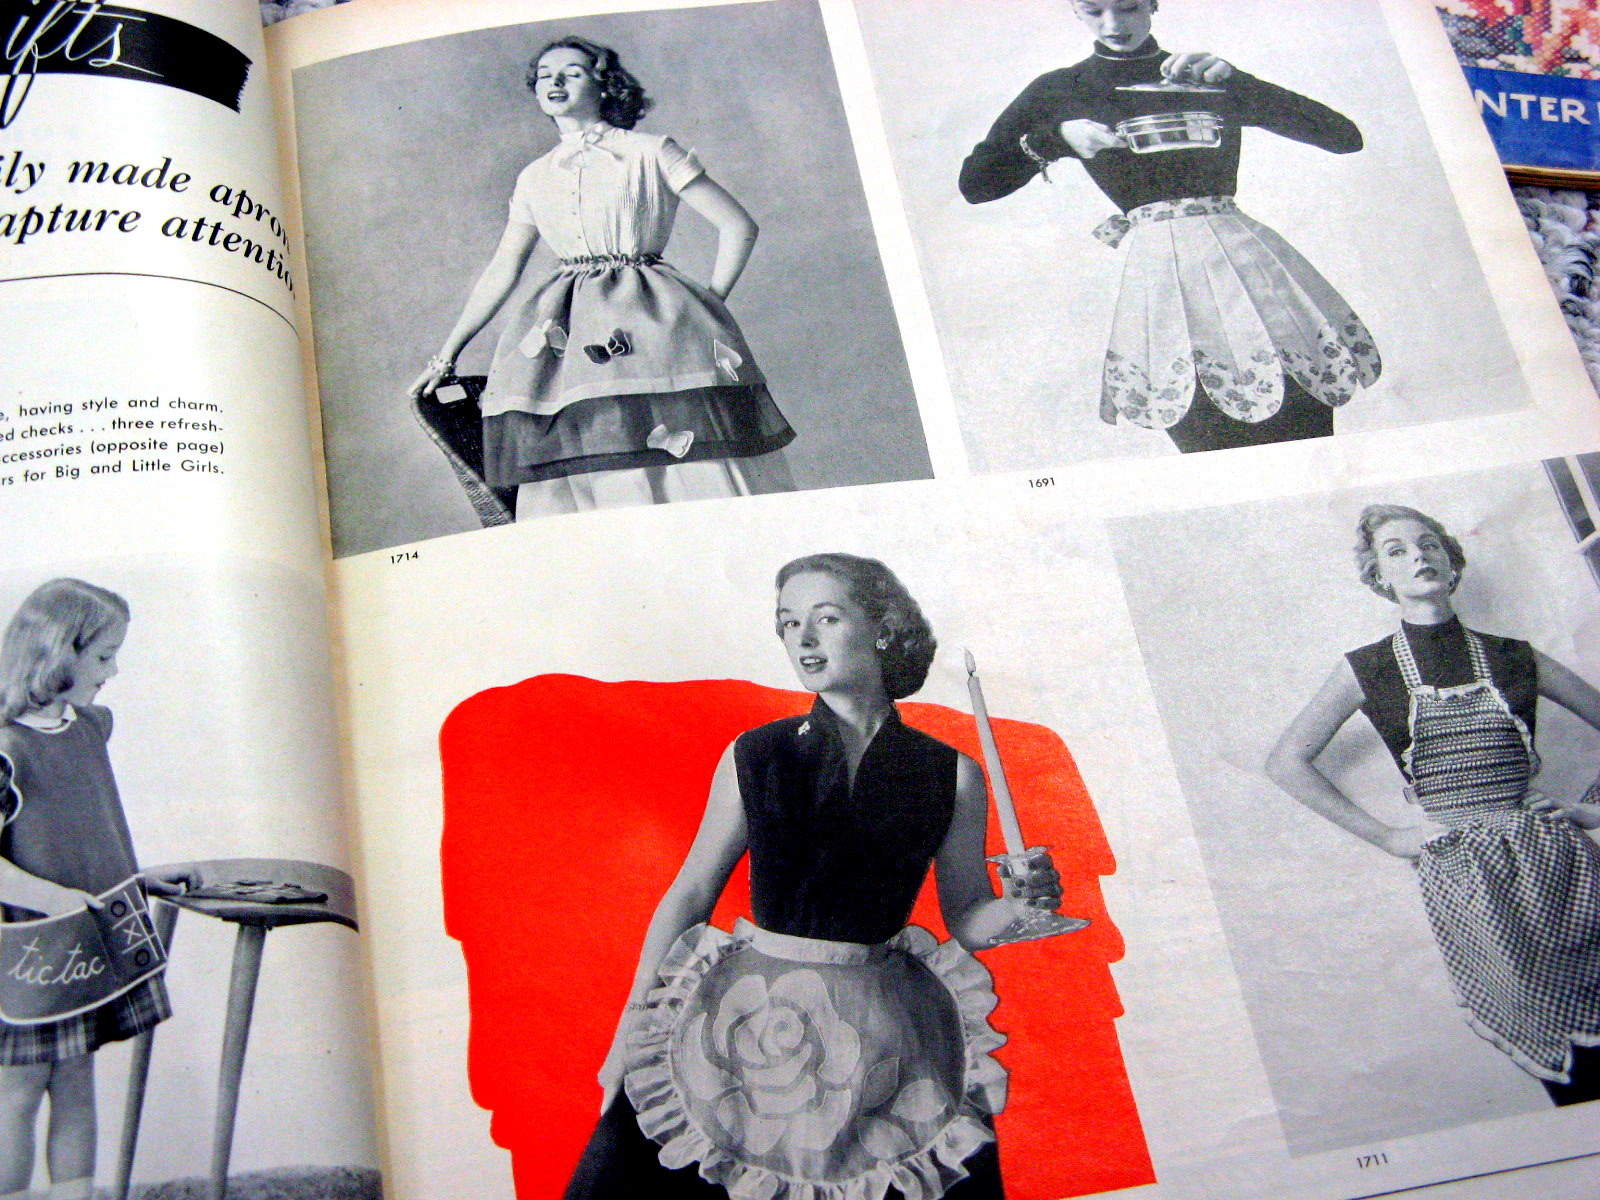 White apron meaning - Aprons 1950s Edit